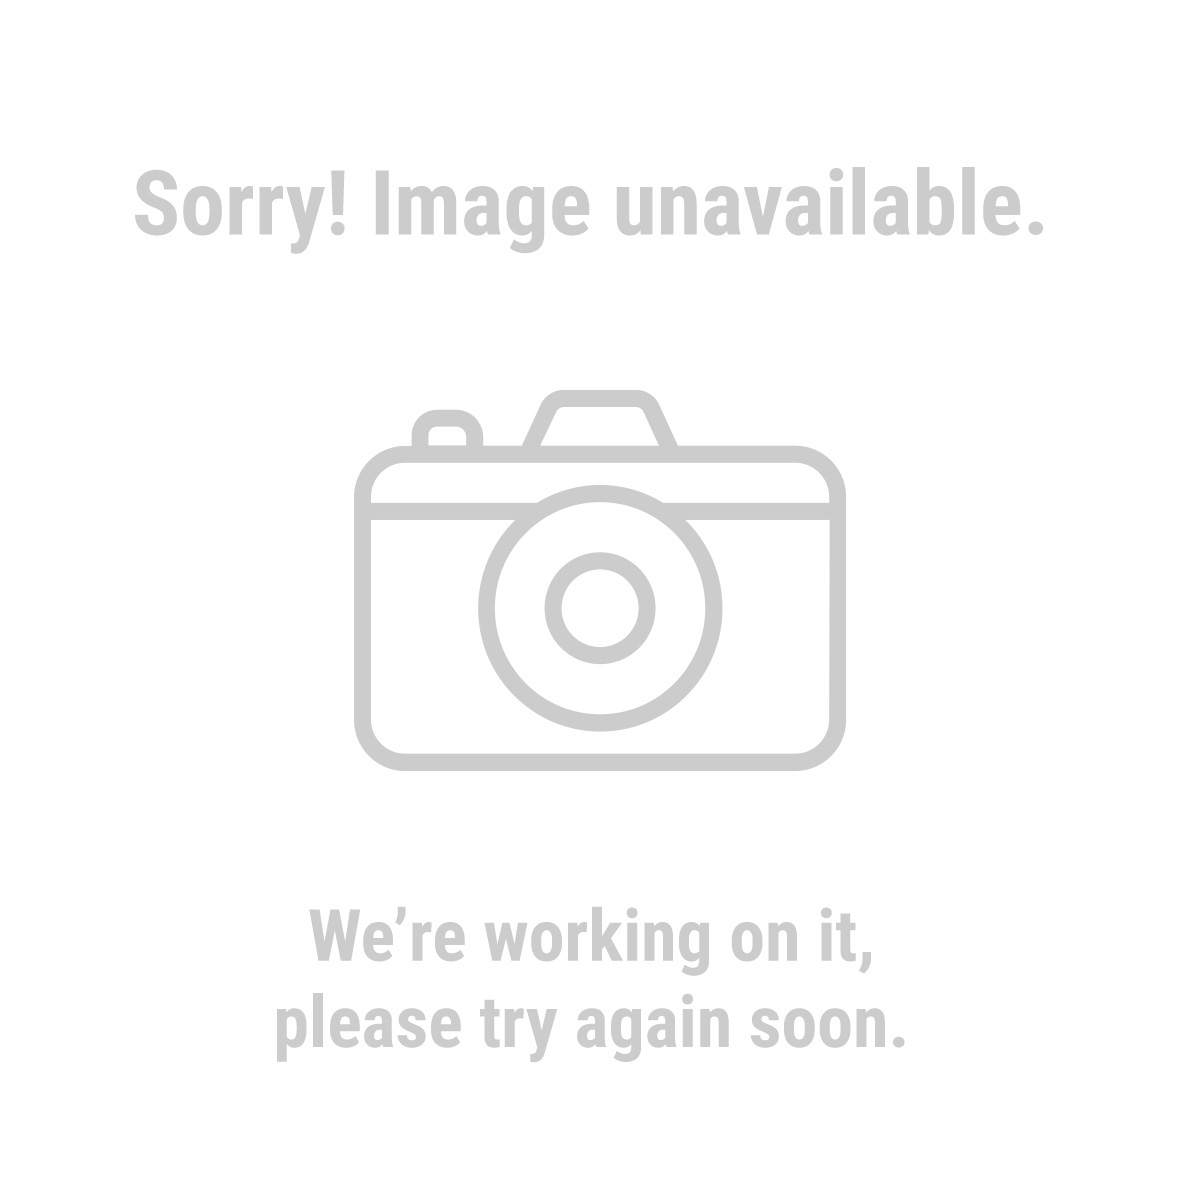 HFT 65193 Threadlocker, No. 22, 10 mL, Low Strength